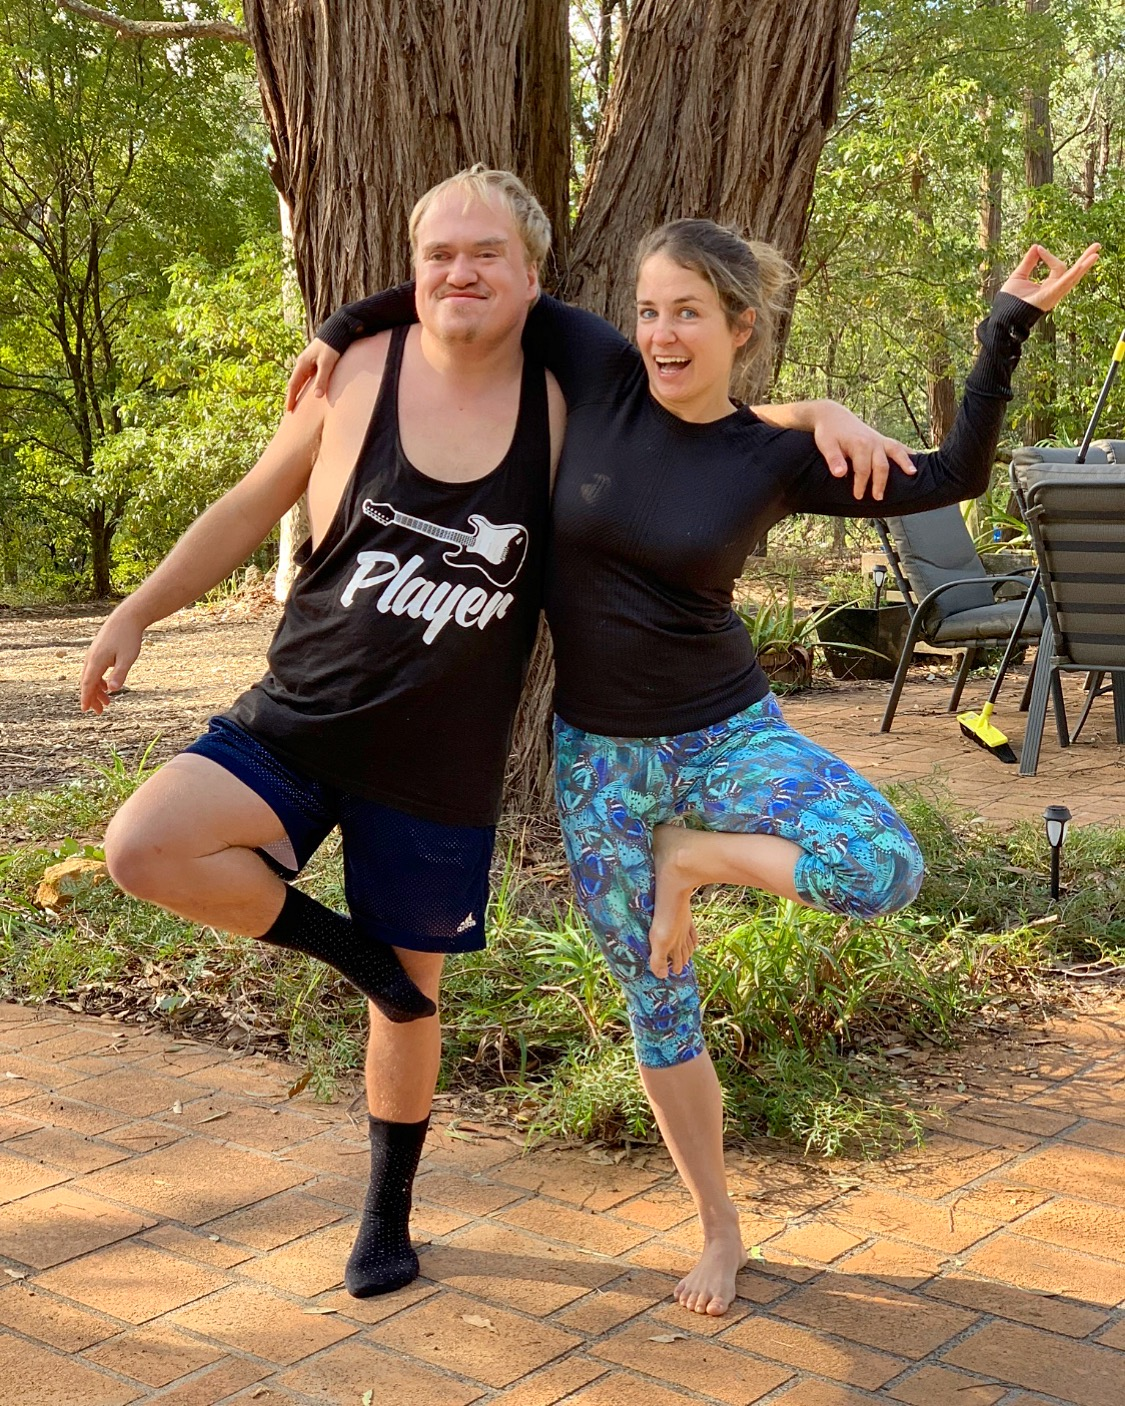 A man and a woman doing yoga together